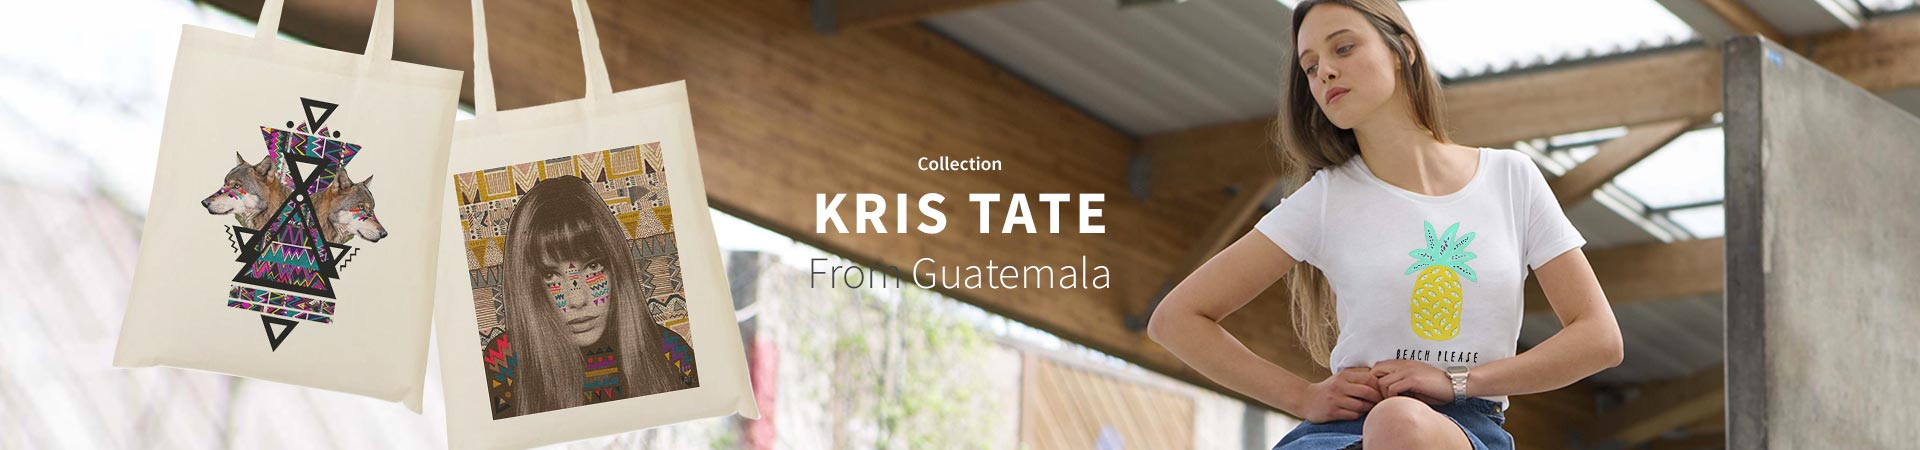 Collection Kris Tate